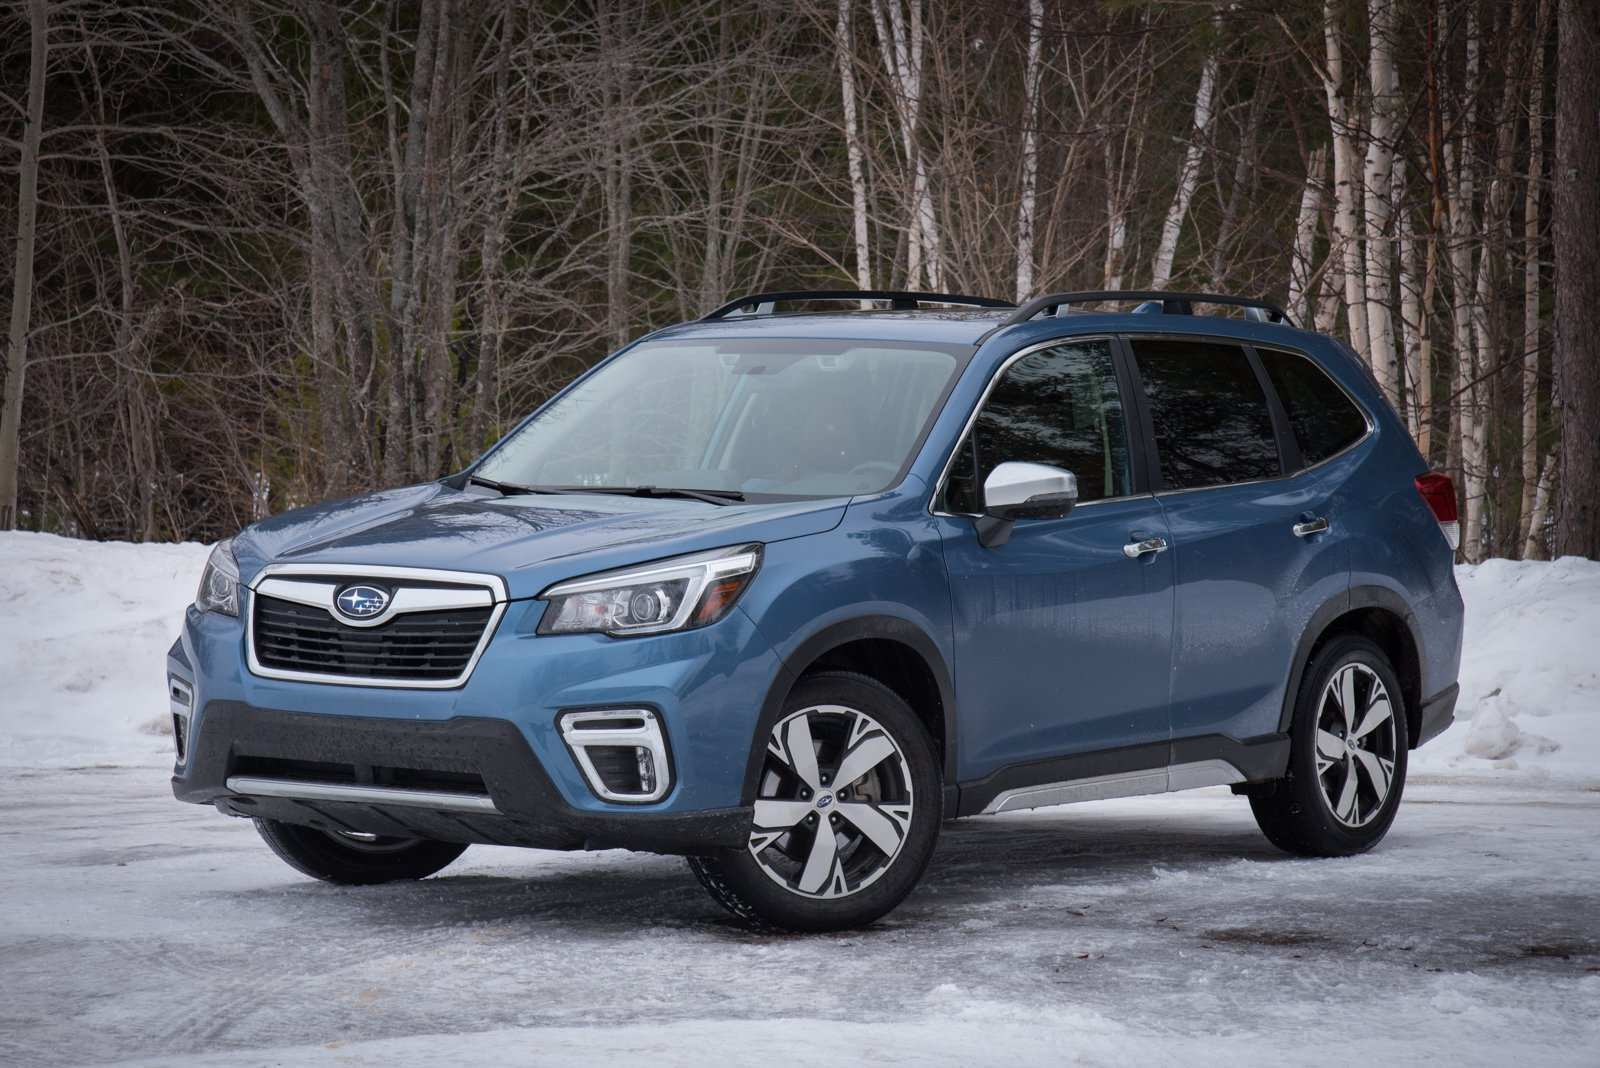 80 The 2019 Subaru Forester Engine